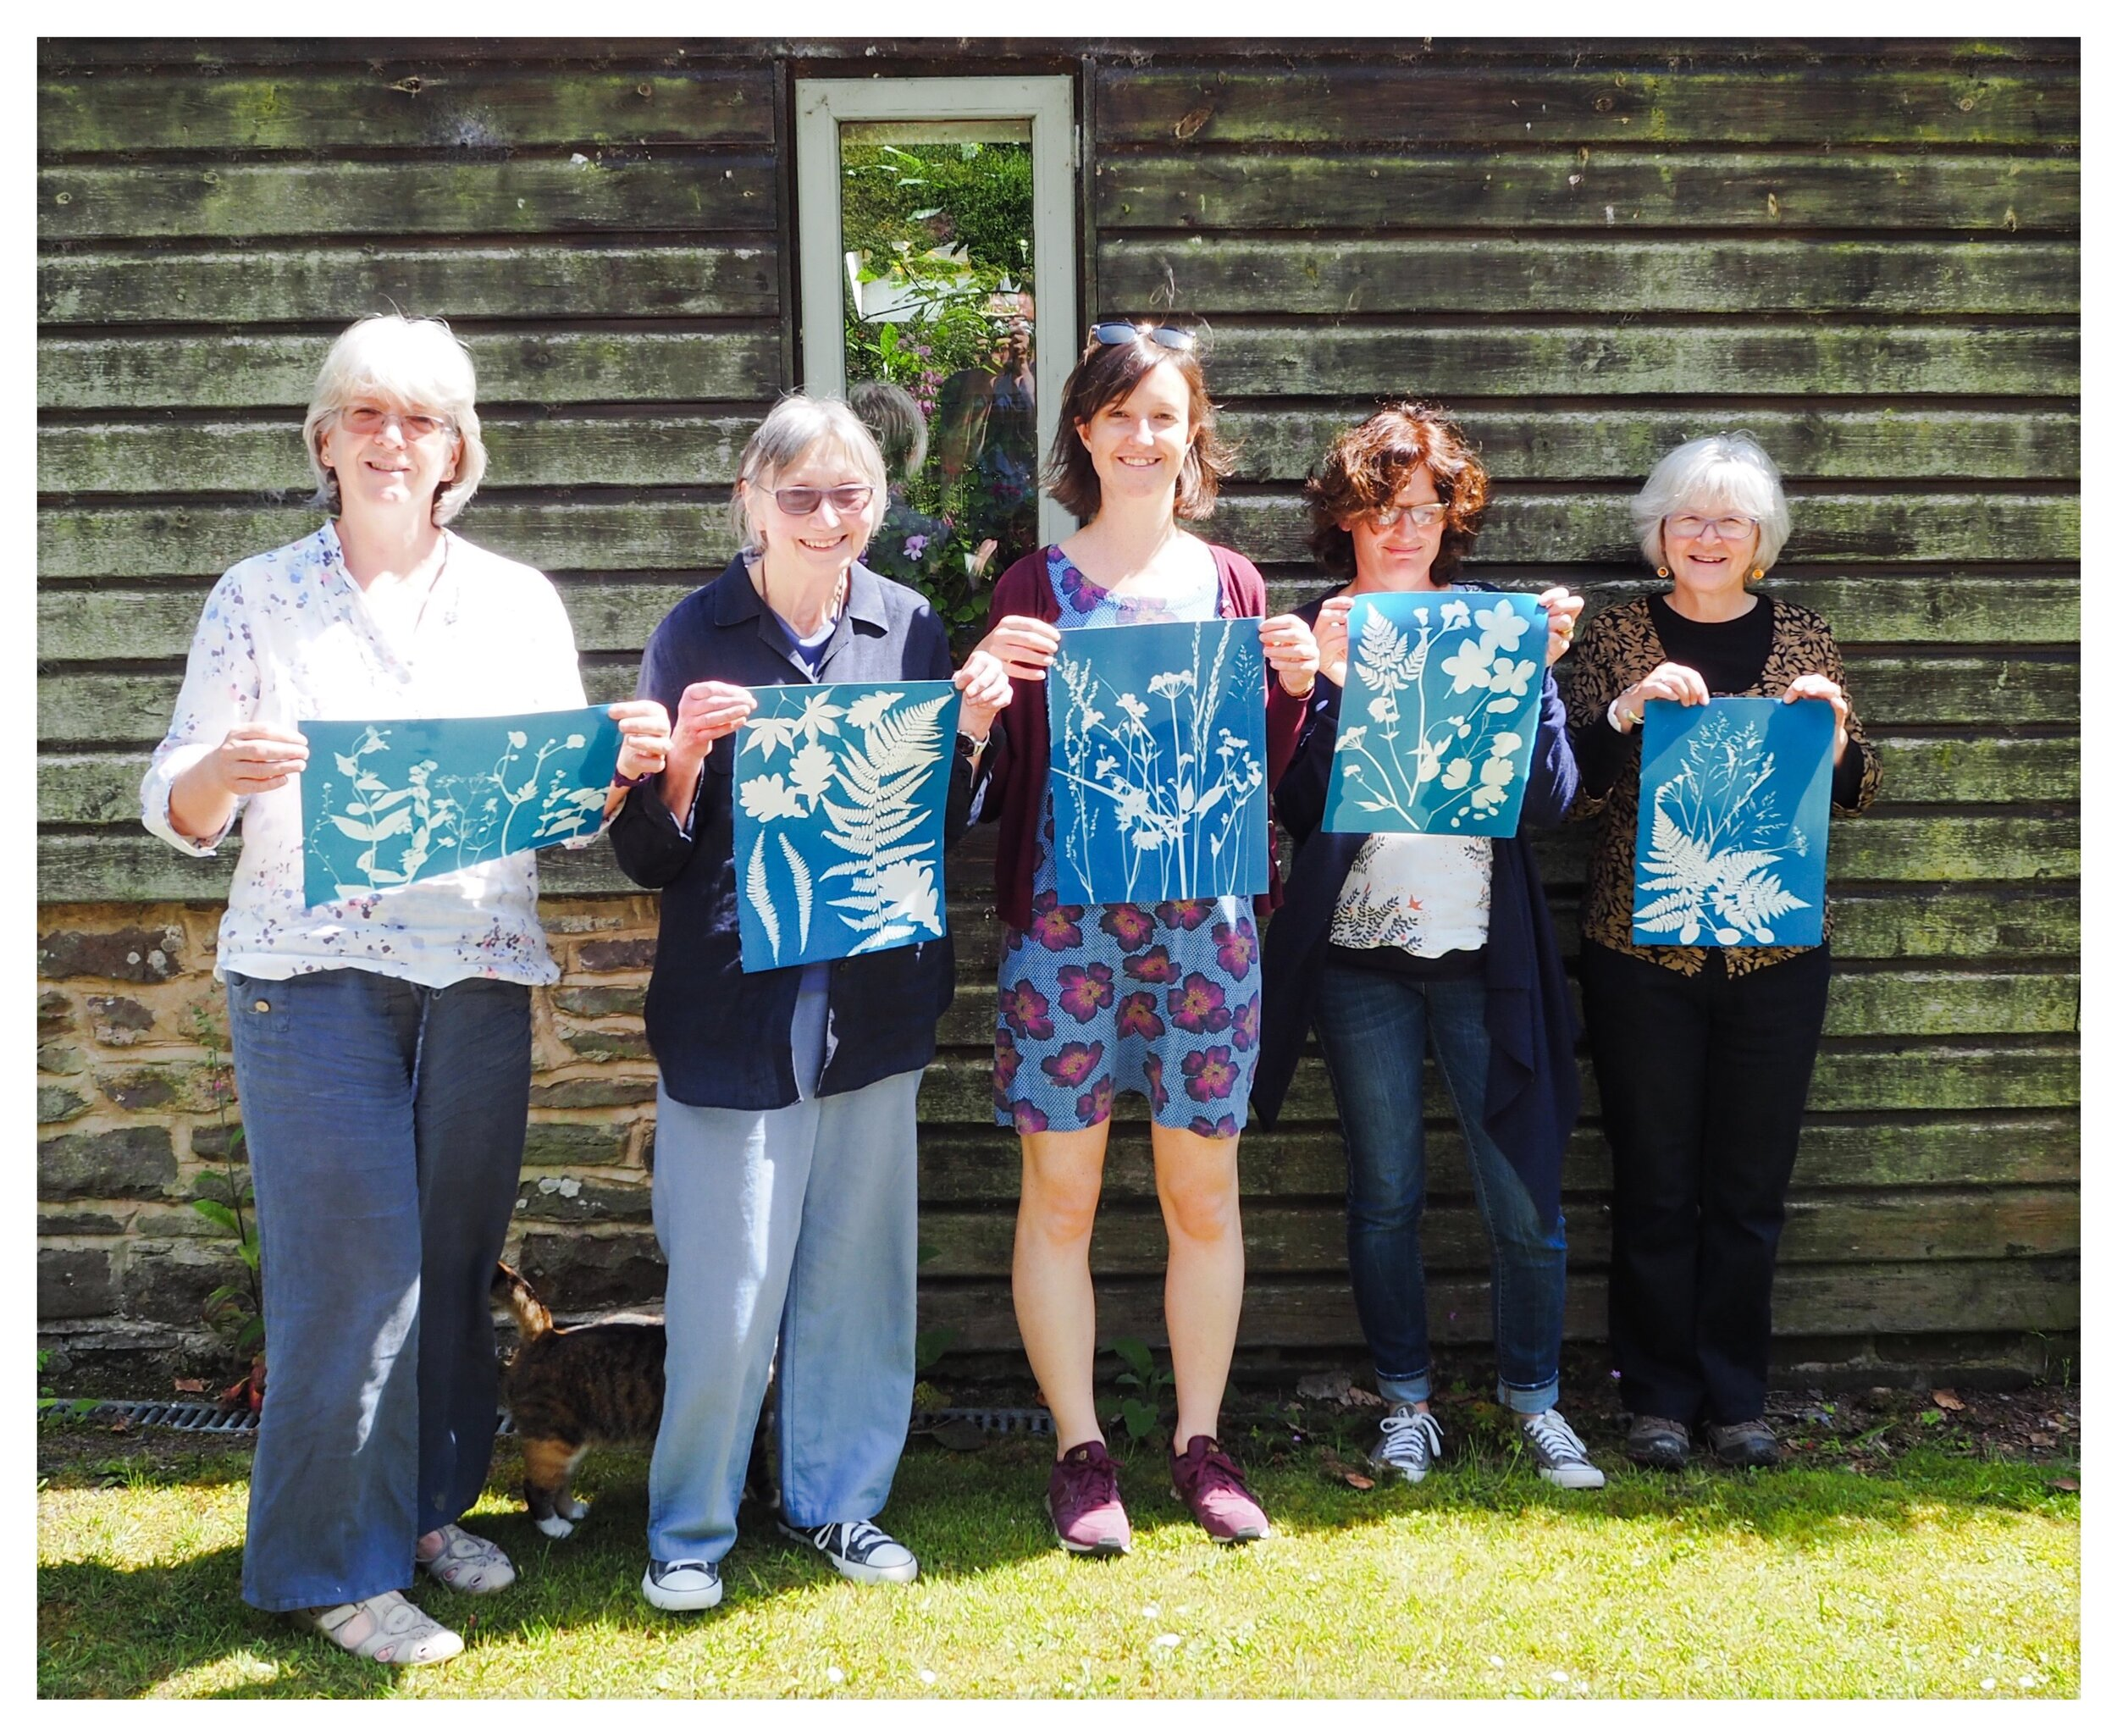 Students with some of their prints, June 2019.